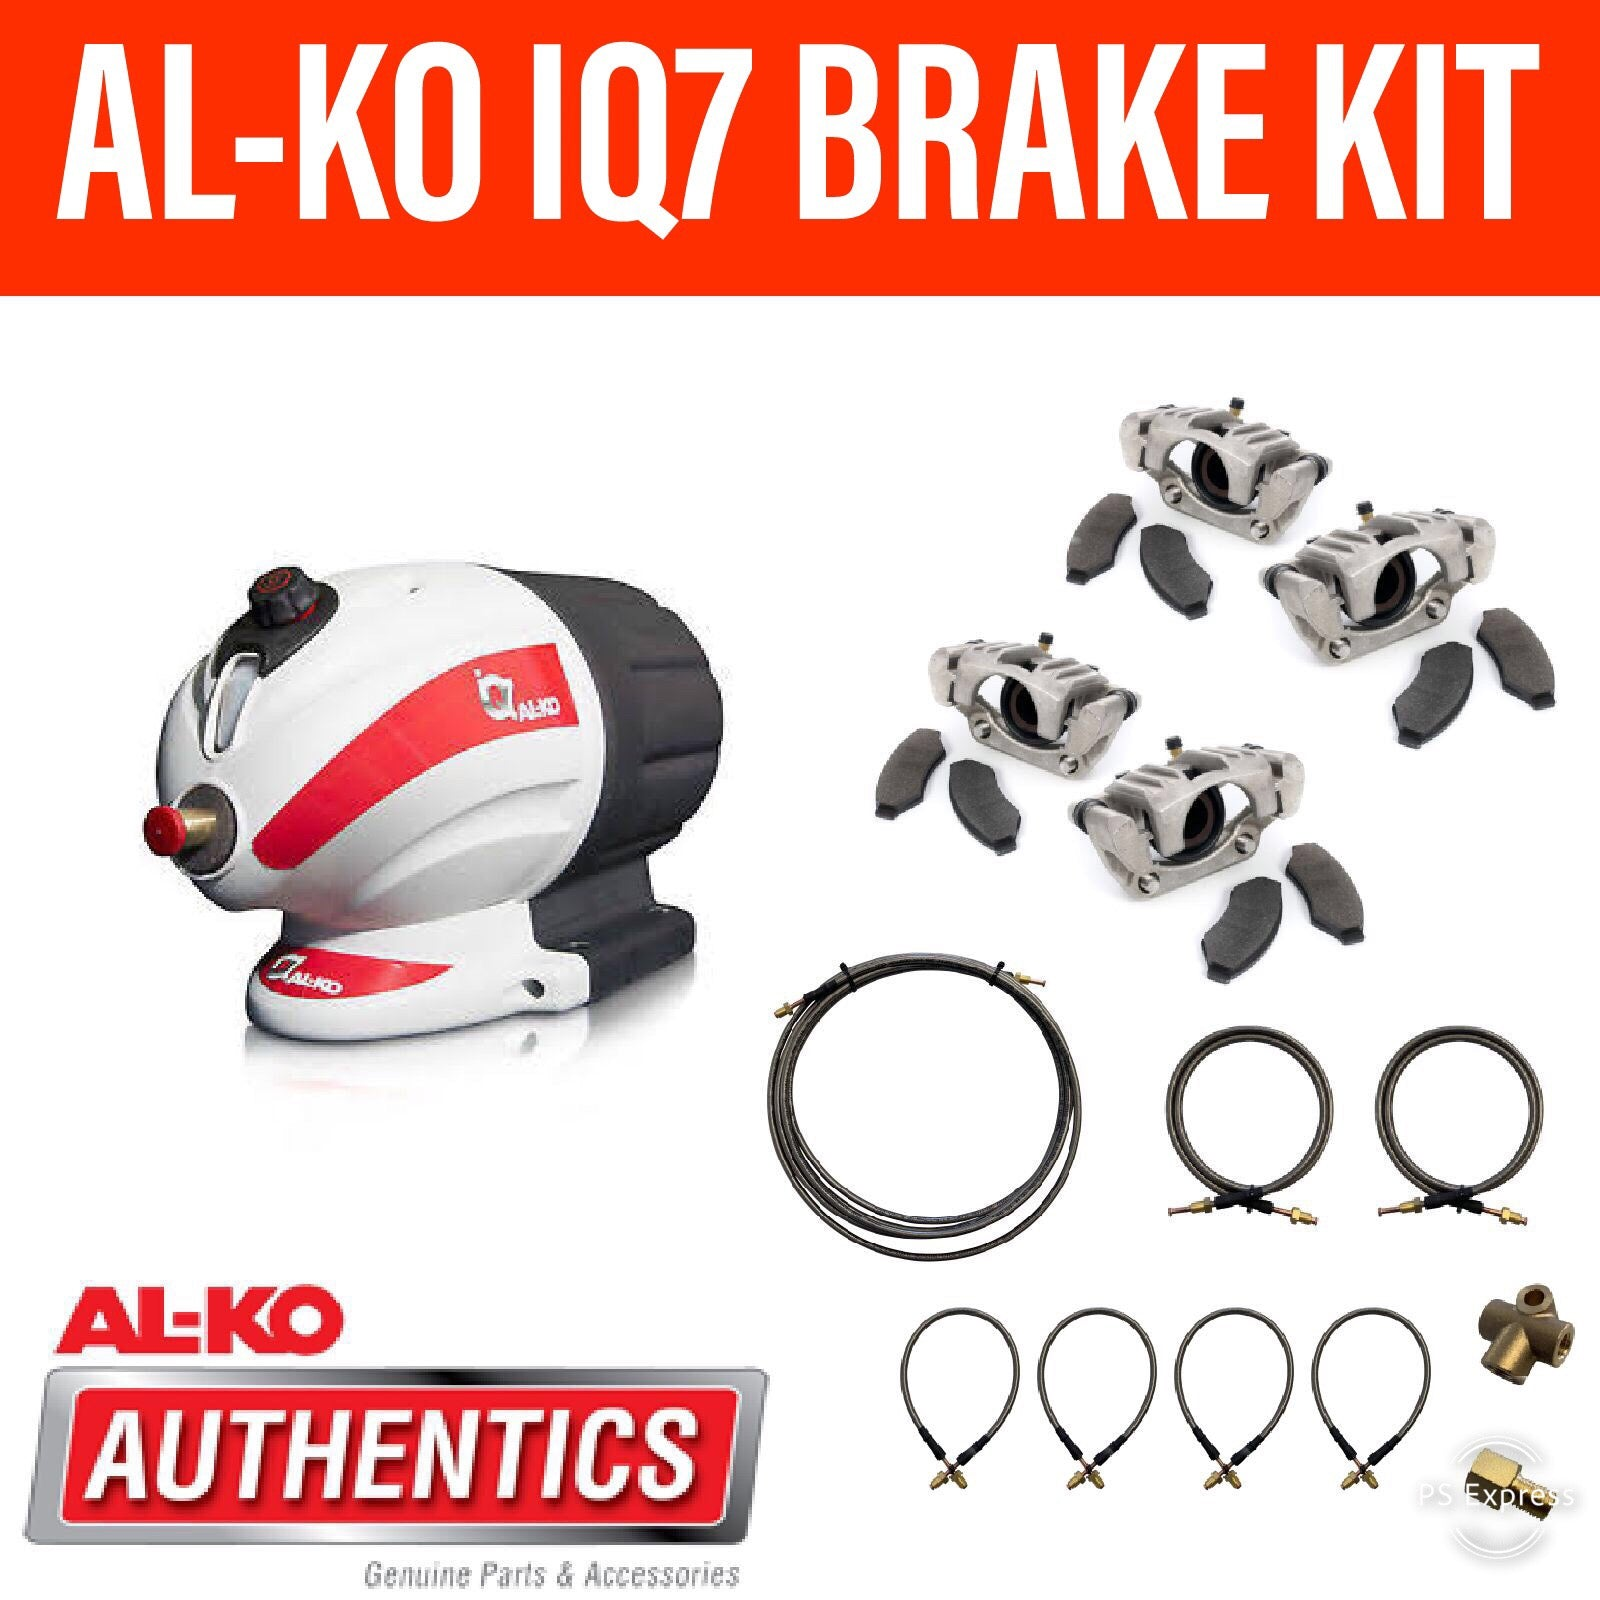 AL-KO IQ7 BRAKE KIT With Stainless Steel Calipers and S/S Brake Lines